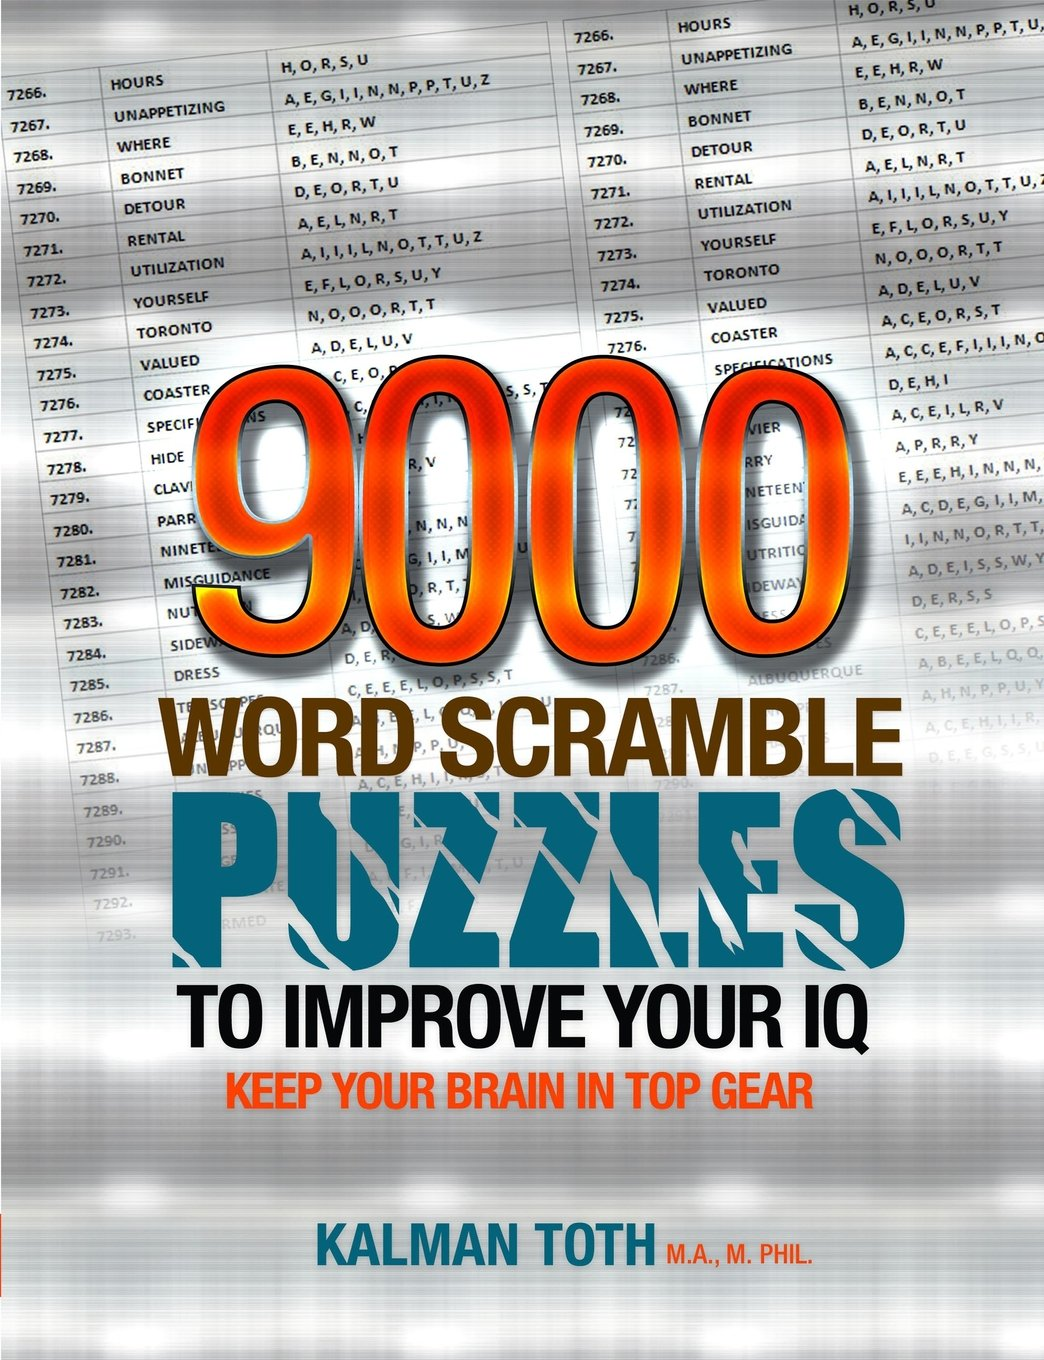 9000 Word Scramble Puzzles to Improve Your IQ free download